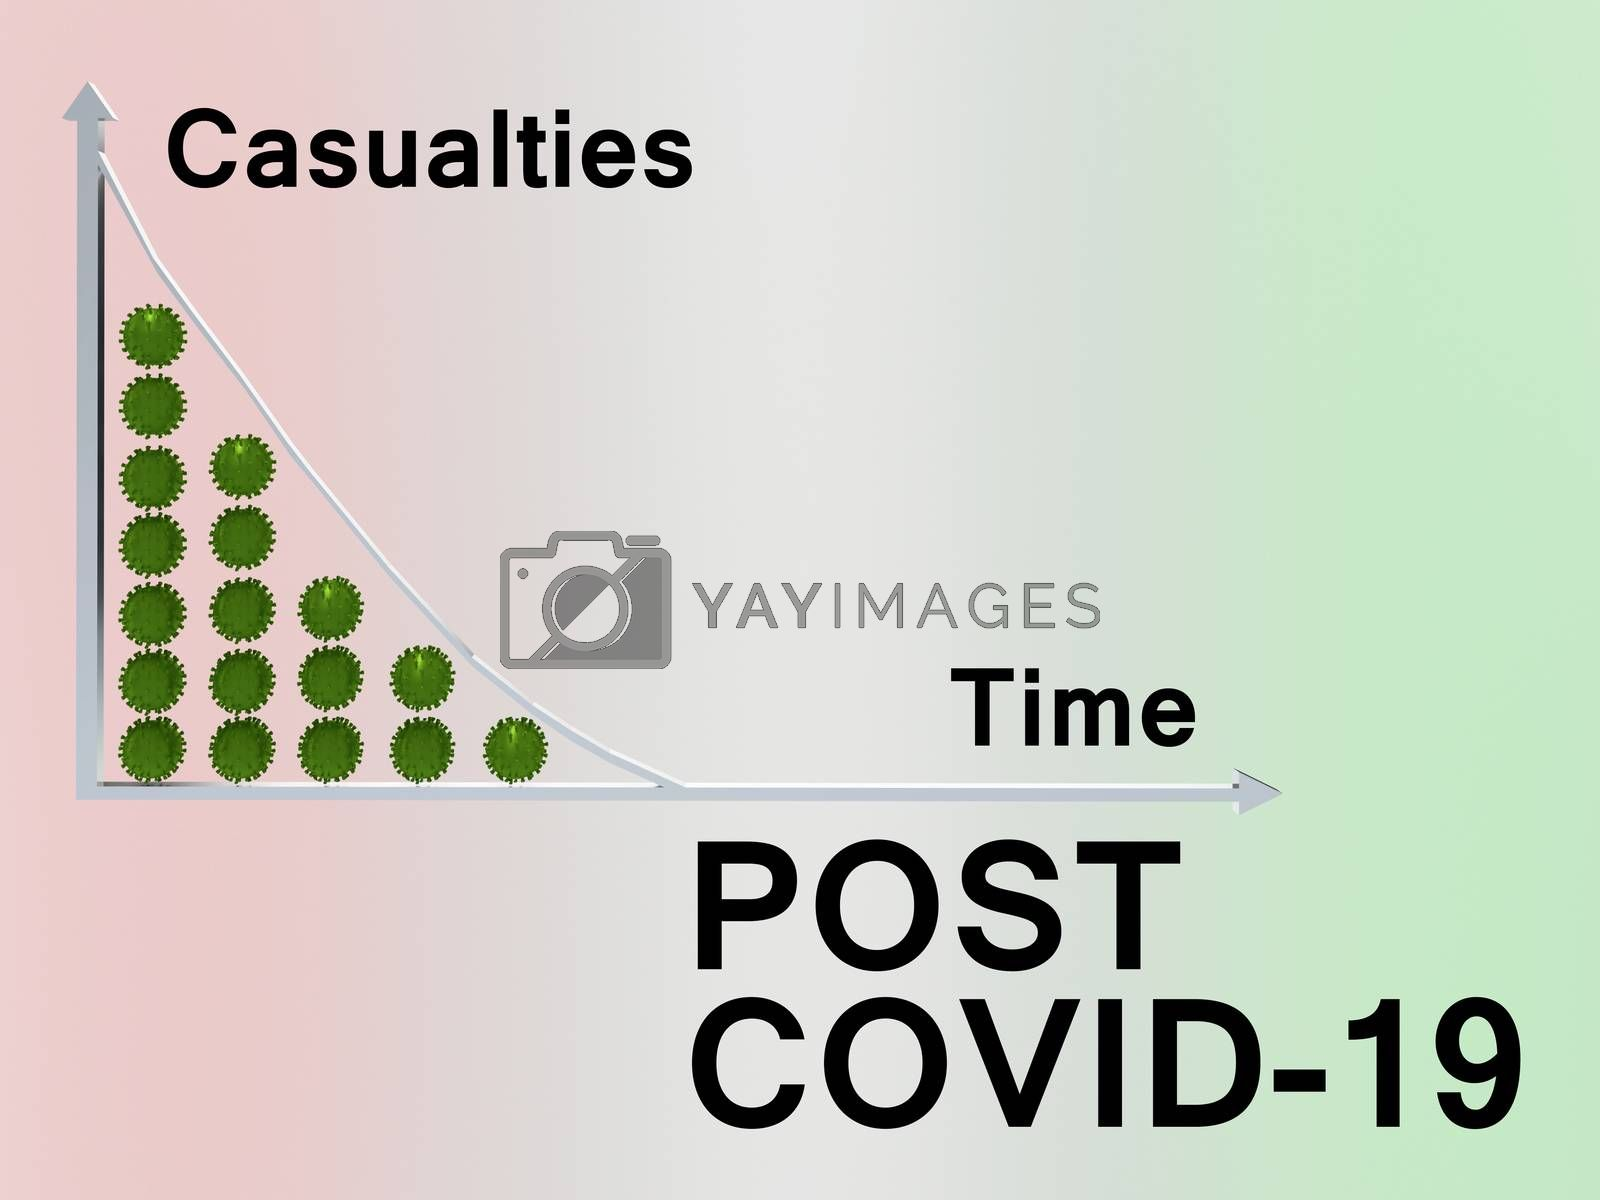 3D illustration of POST COVID-19 script over a graph of casualties reduced to zero, isolated on pale colored backgrond.